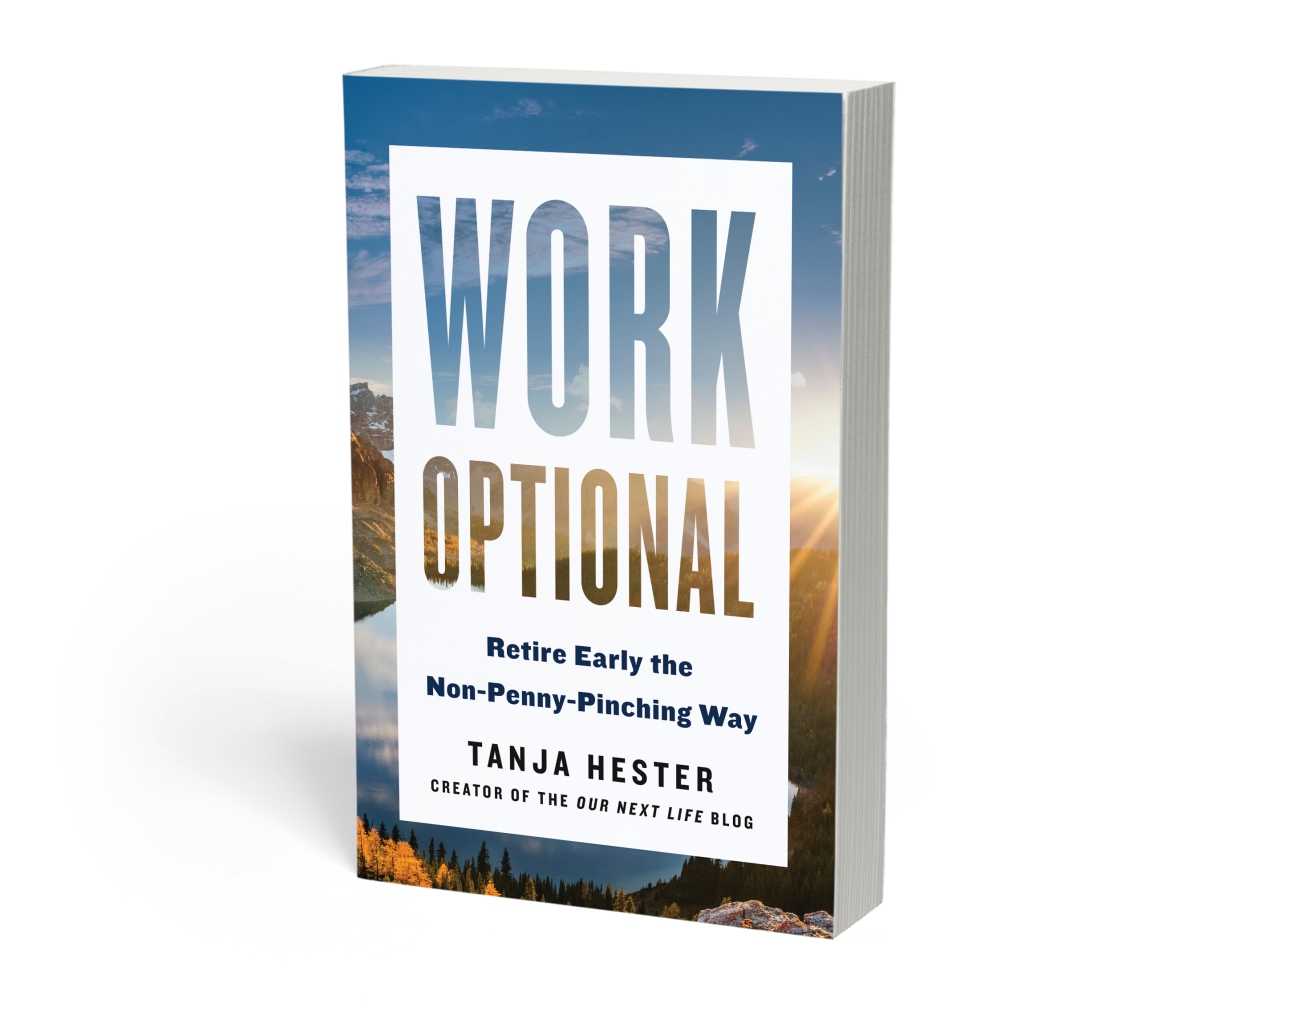 Work Optional: Retire Early the Non-Penny-Pinching Way by Tanja Hester, creator of the Our Next Life blog